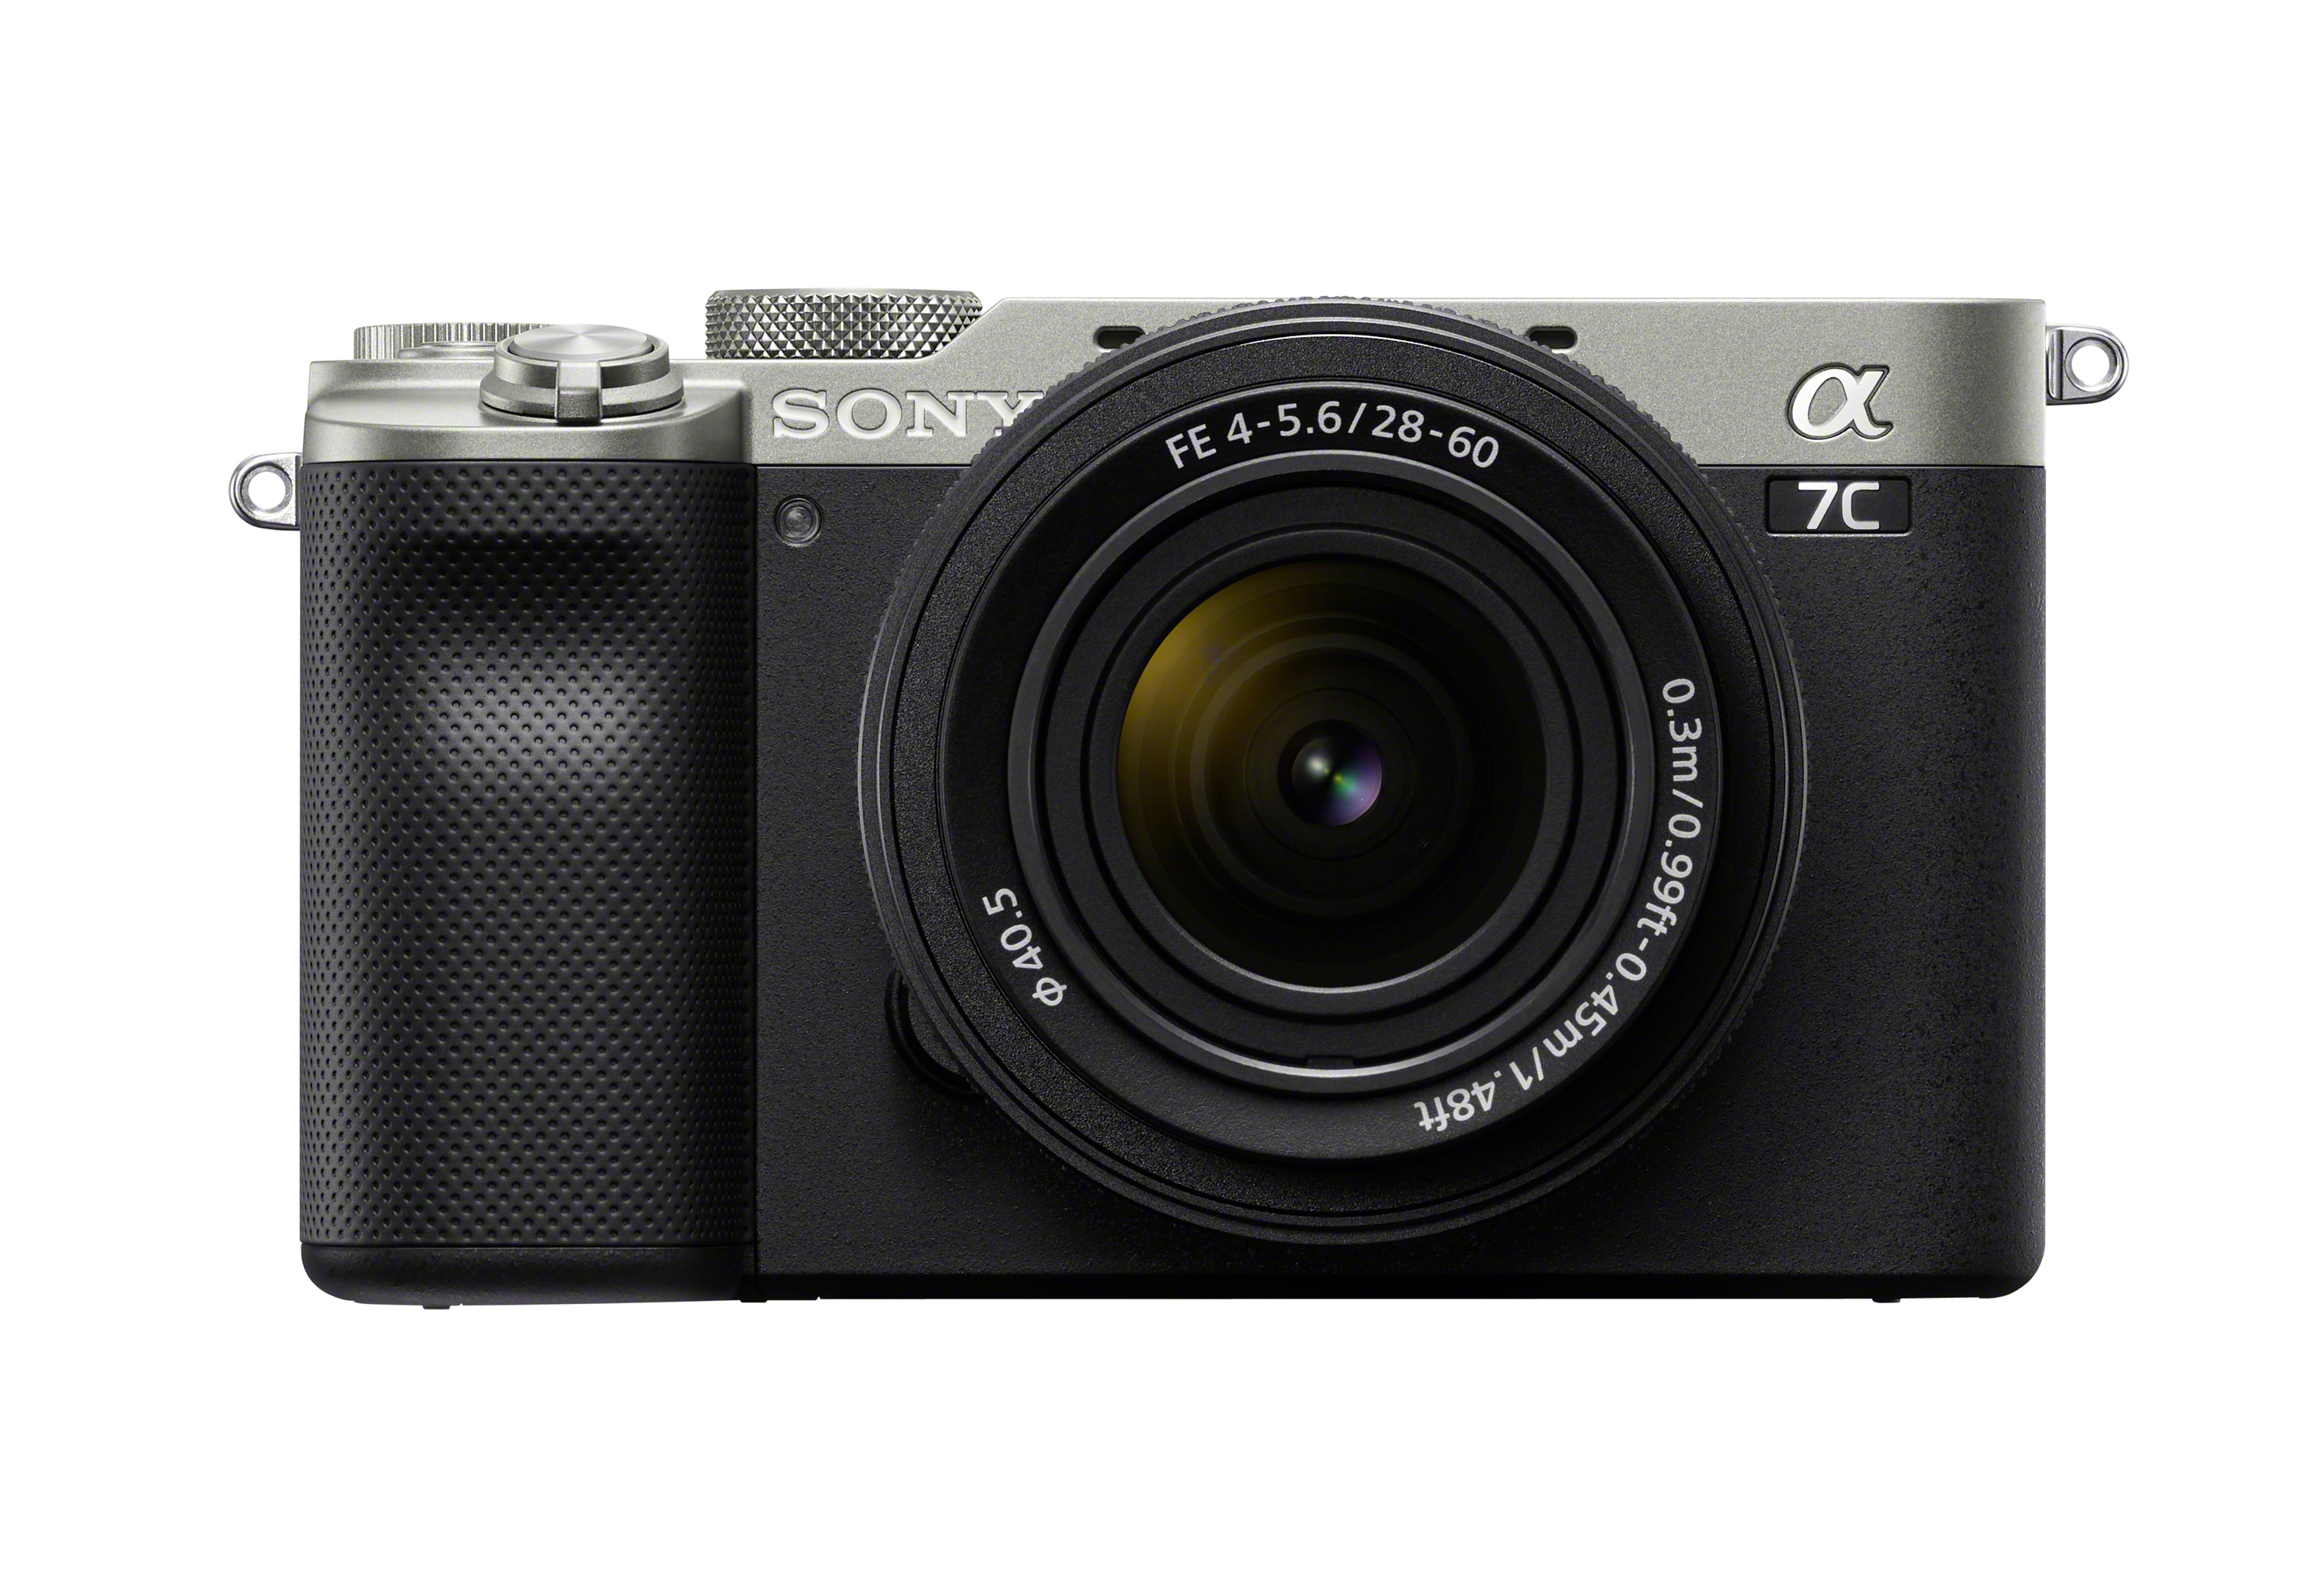 Sony Electronics Introduces Alpha 7C Camera and the Zoom Lens, the World's Smallest and Lightest  Full-frame Camera system